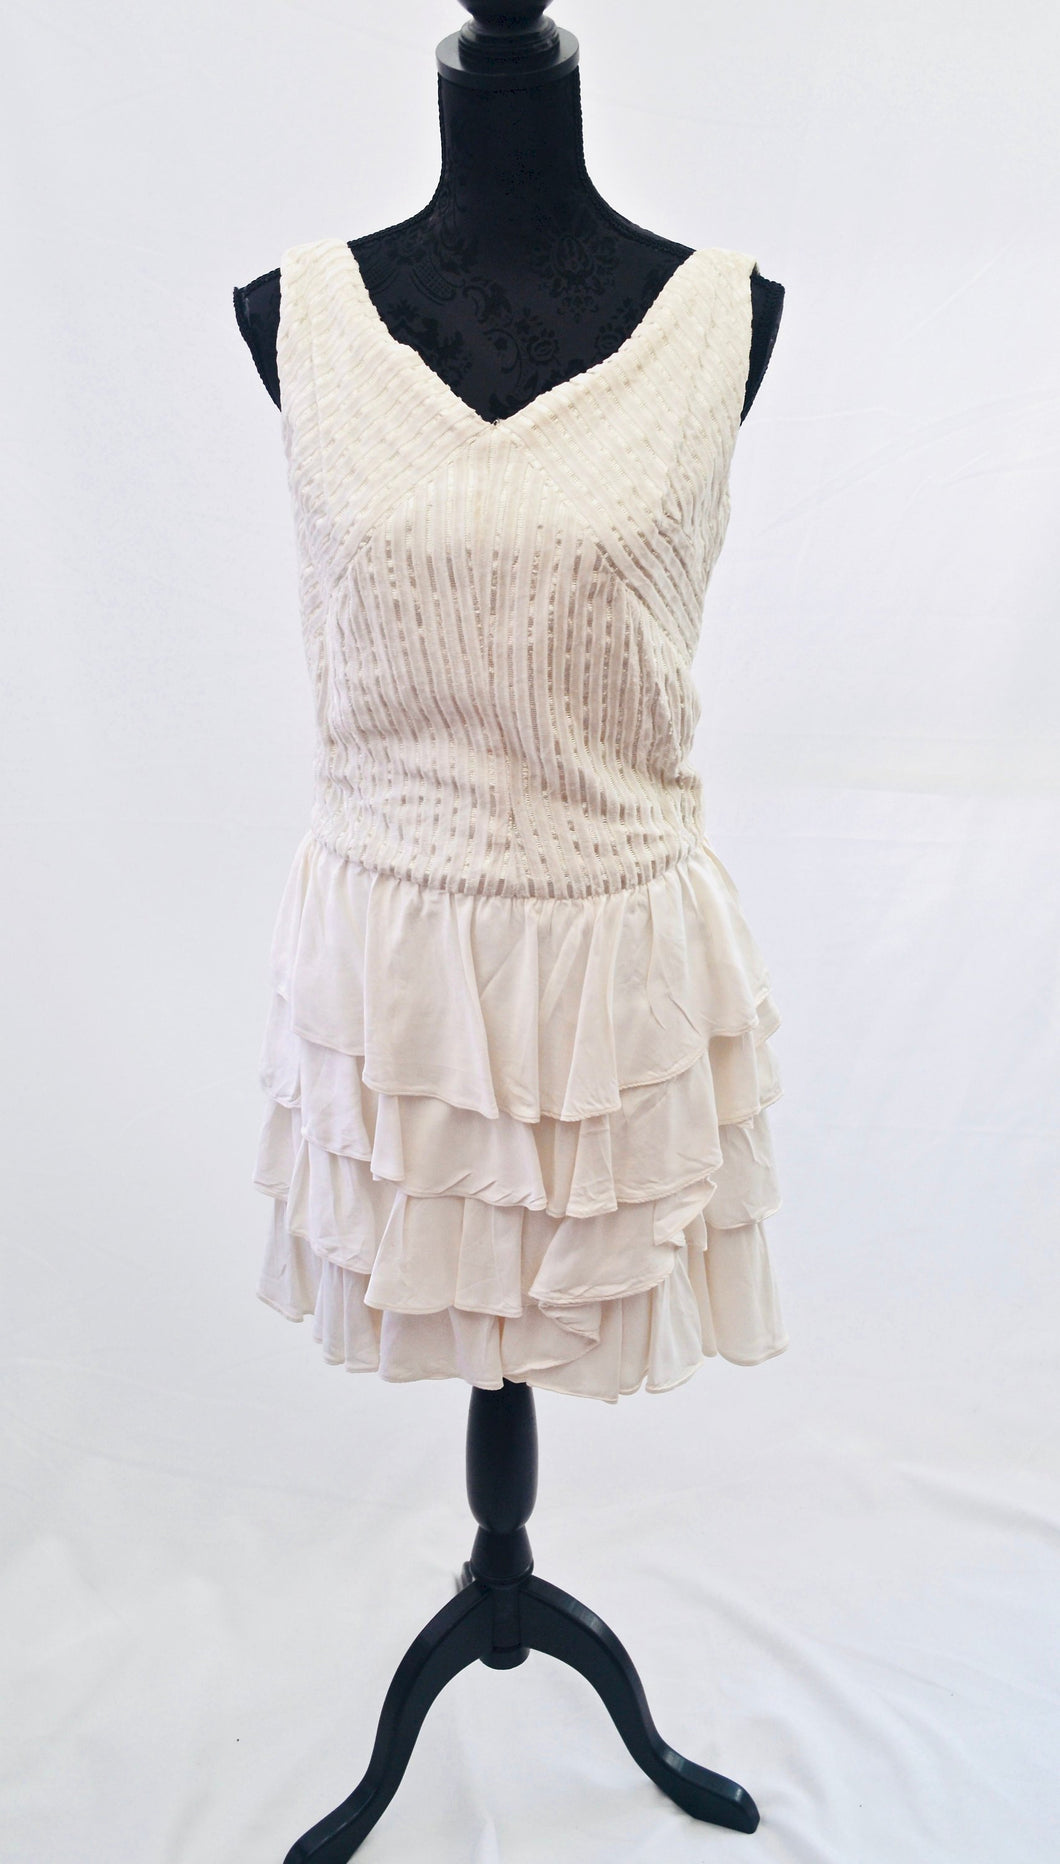 1980s Ra Ra skirt dress, 1920s flapper style dress, White and Silver party dress, Est UK size 12